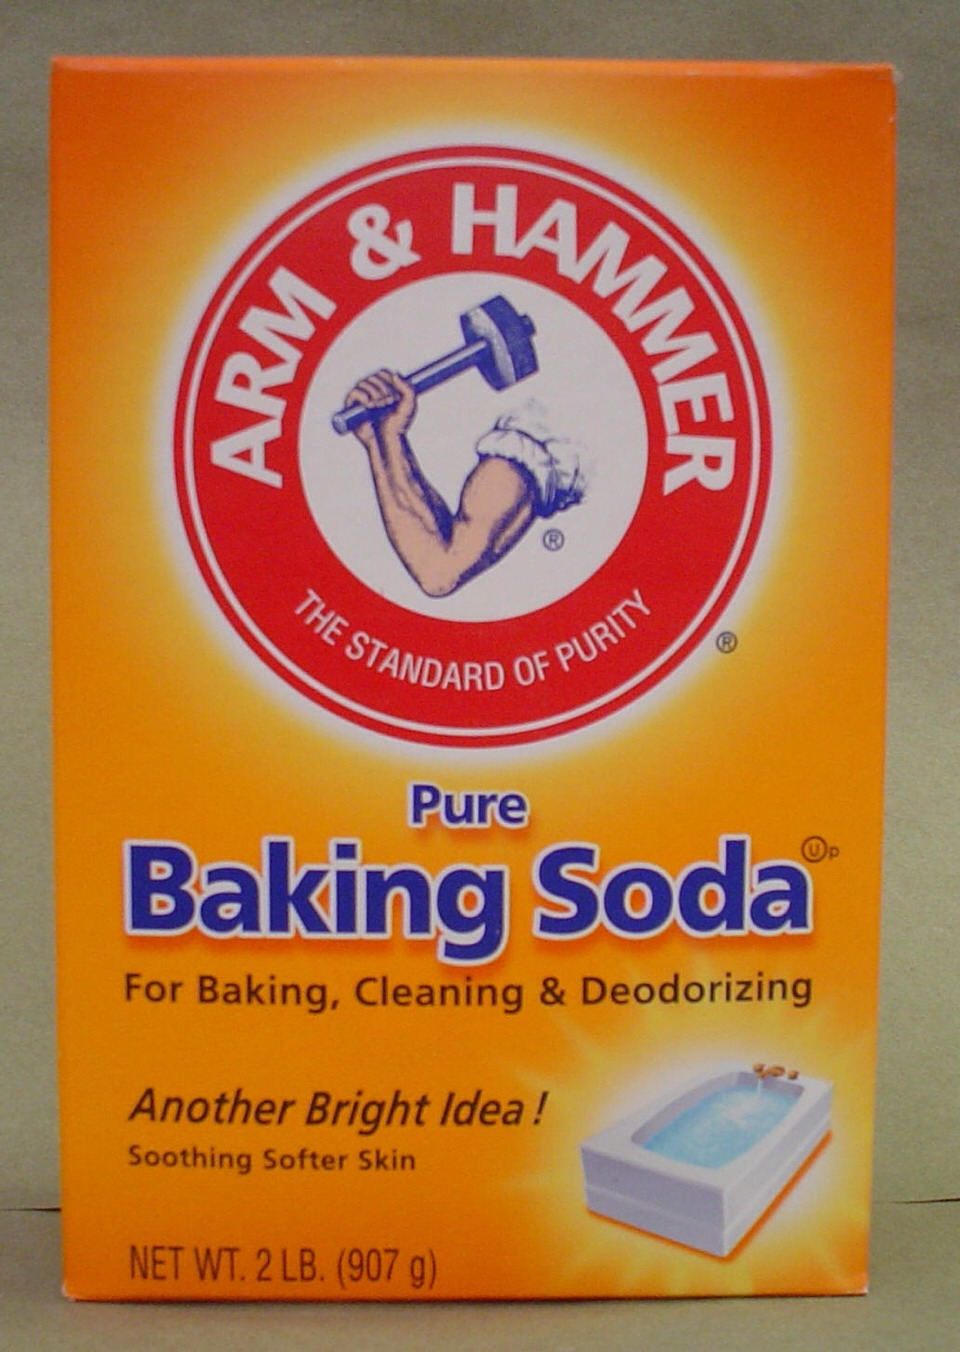 Baking soda has antibacterial properties and amazing uses you might never have thought of